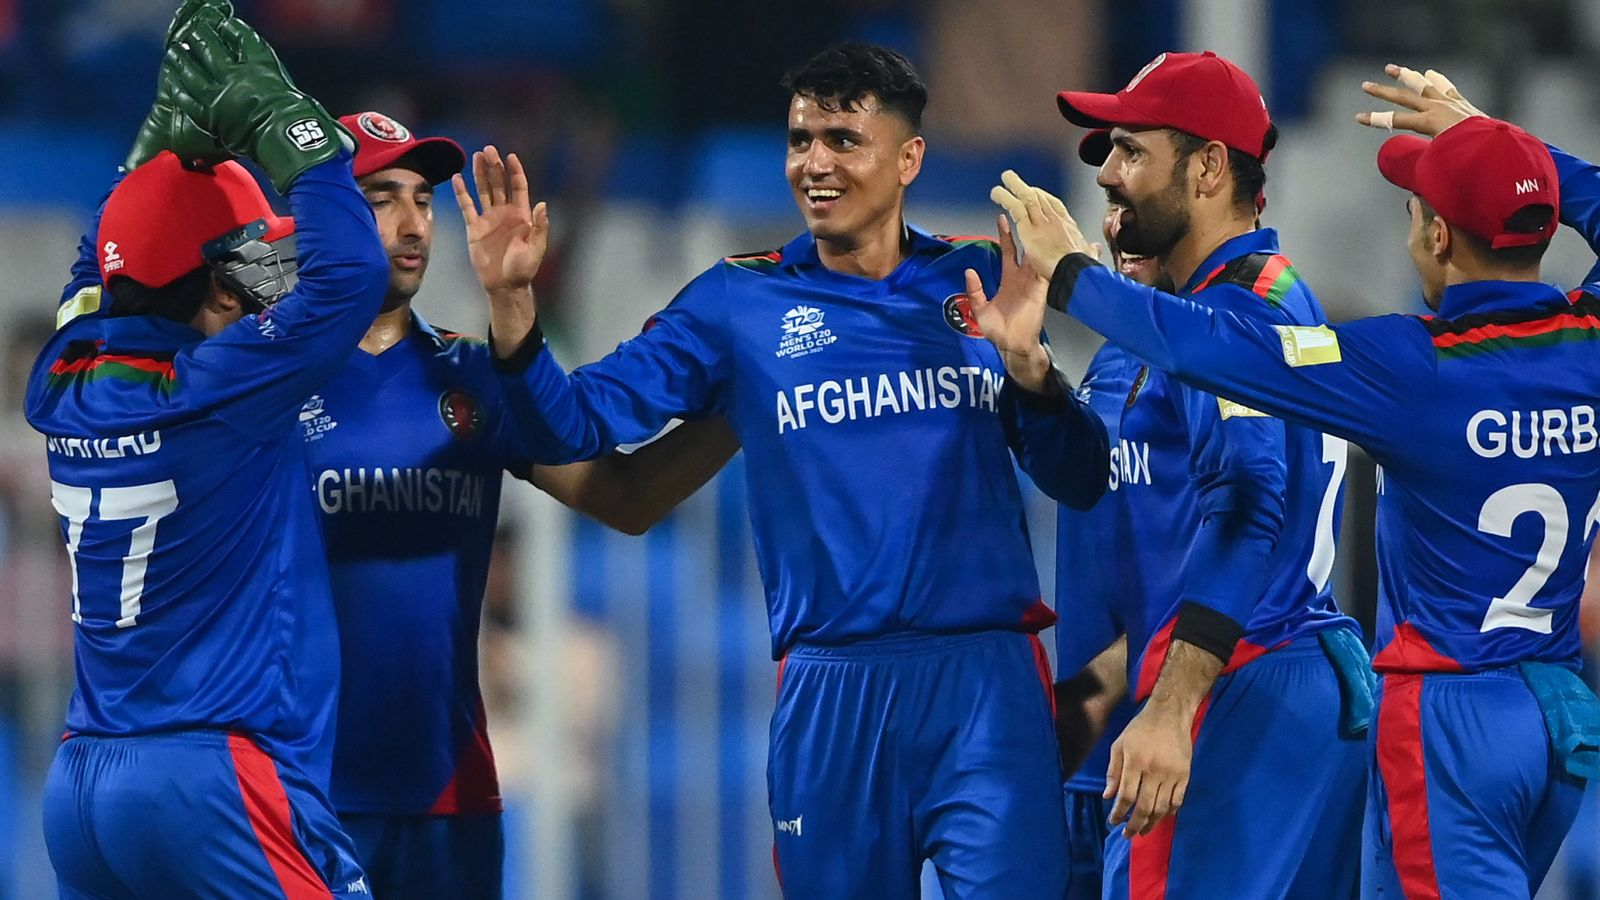 Scotland lose to Afghanistan by 130 runs in T20 World Cup, rolled for 60 as Mujeeb Ur Rahman takes 5-20